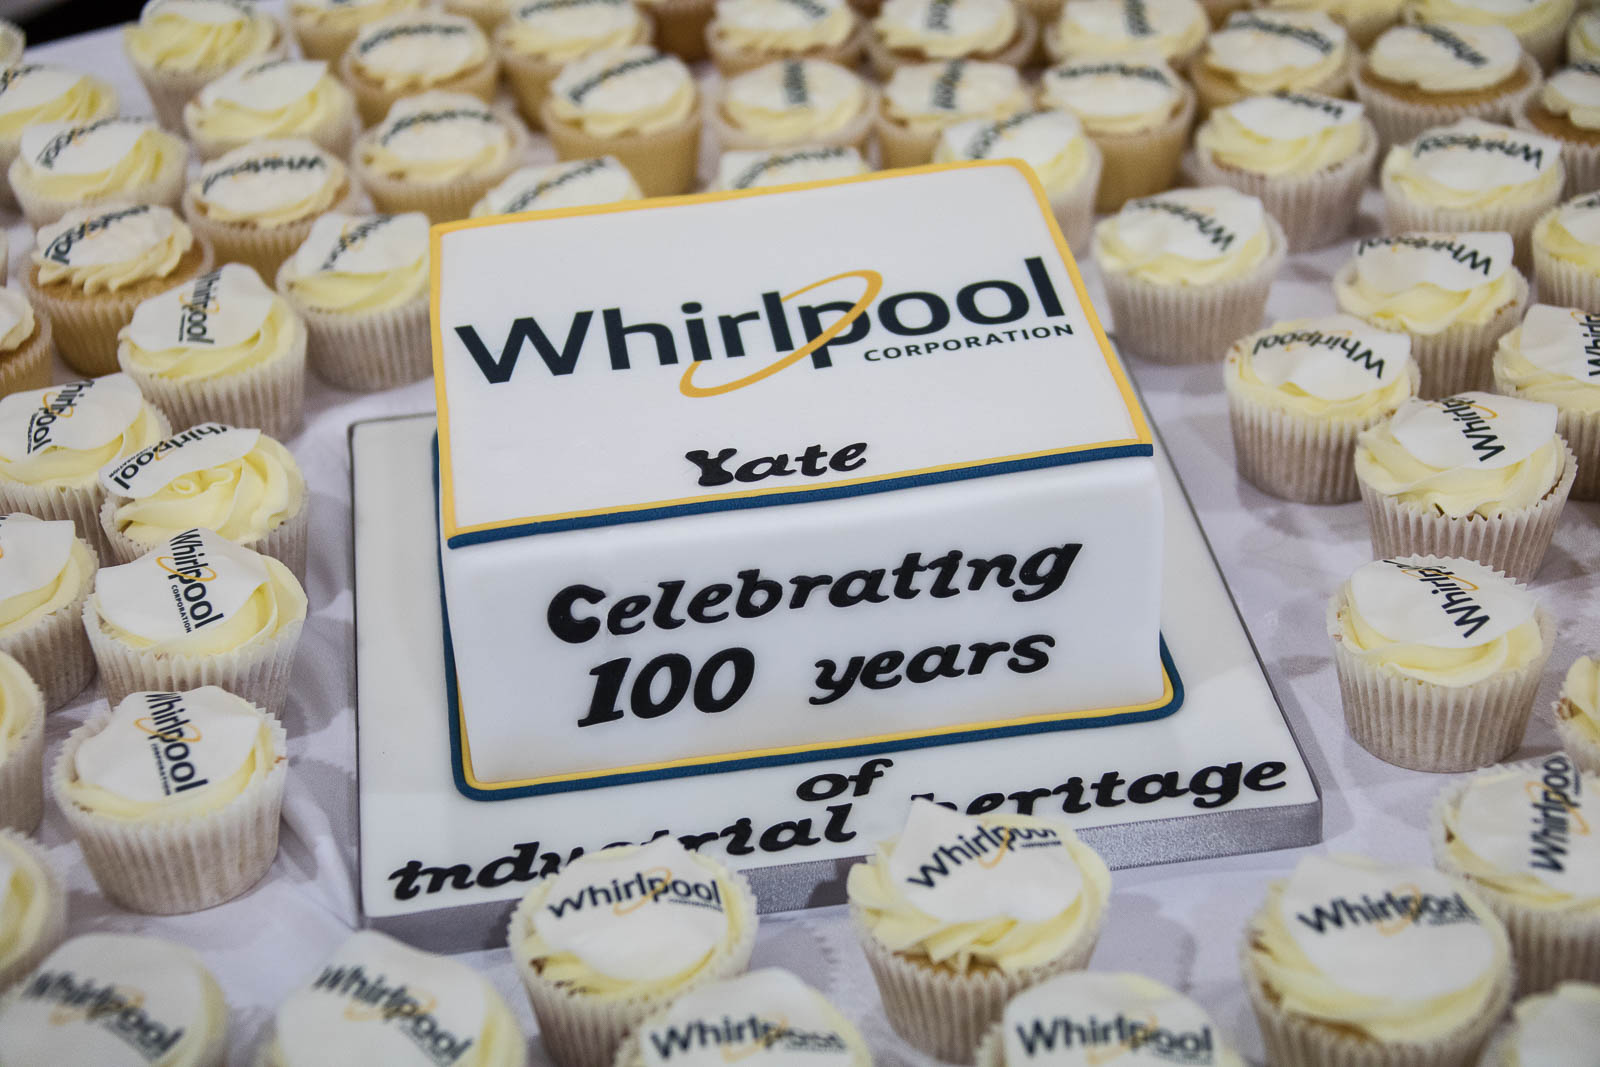 Centenary Celebrations at Whirlpool Corporation's Yate Industrial Site 1